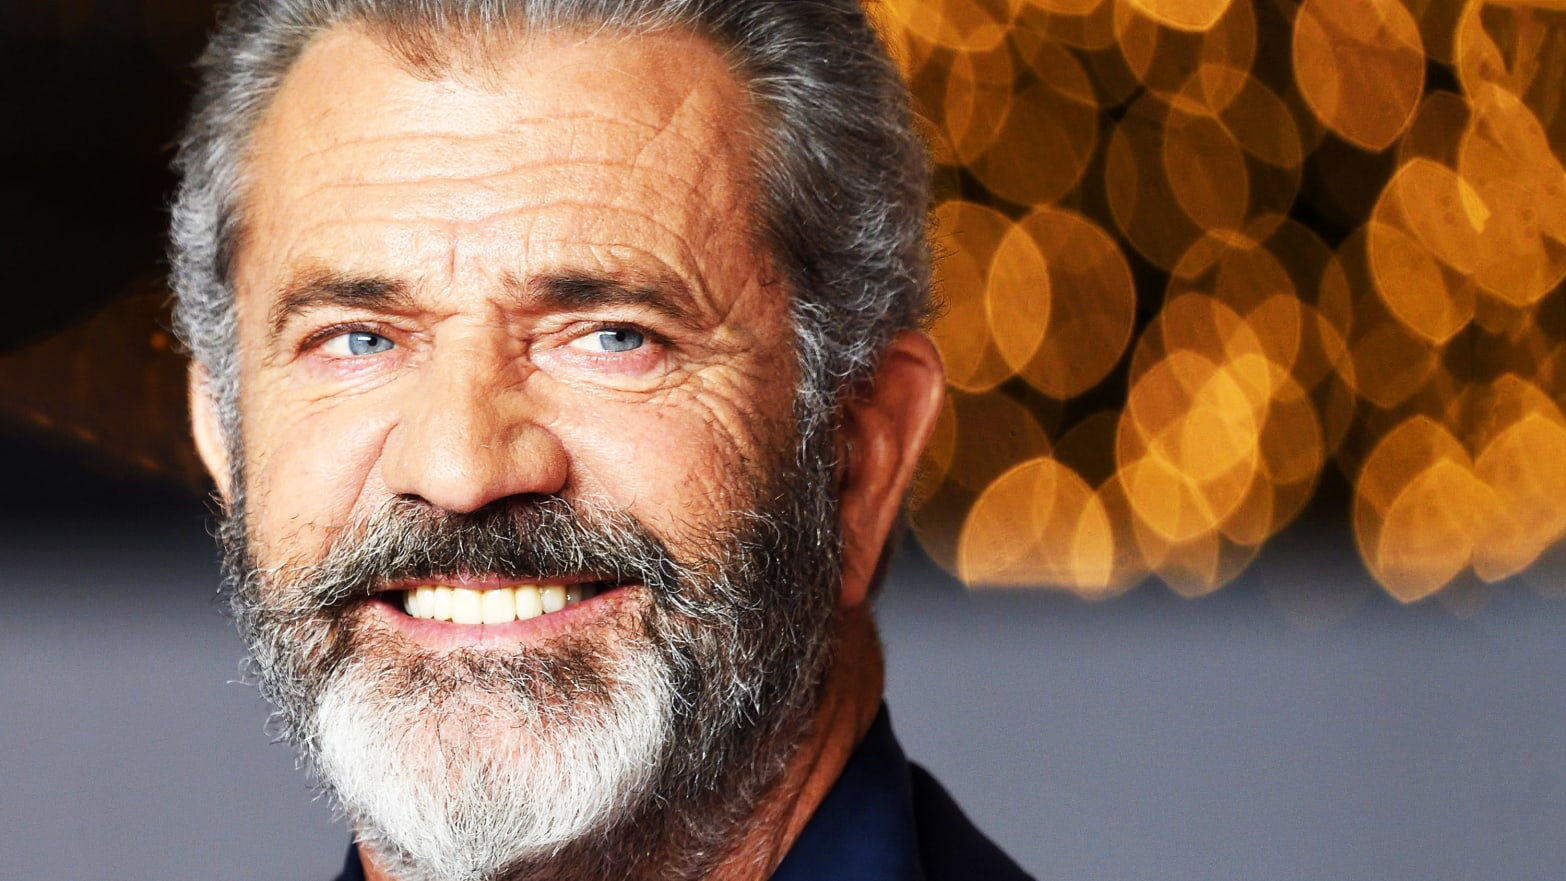 Mel Gibson Rep. Claims Controversial 'Rothchild' Movie Is 'Completely Unrelated' to the Rothschild Family